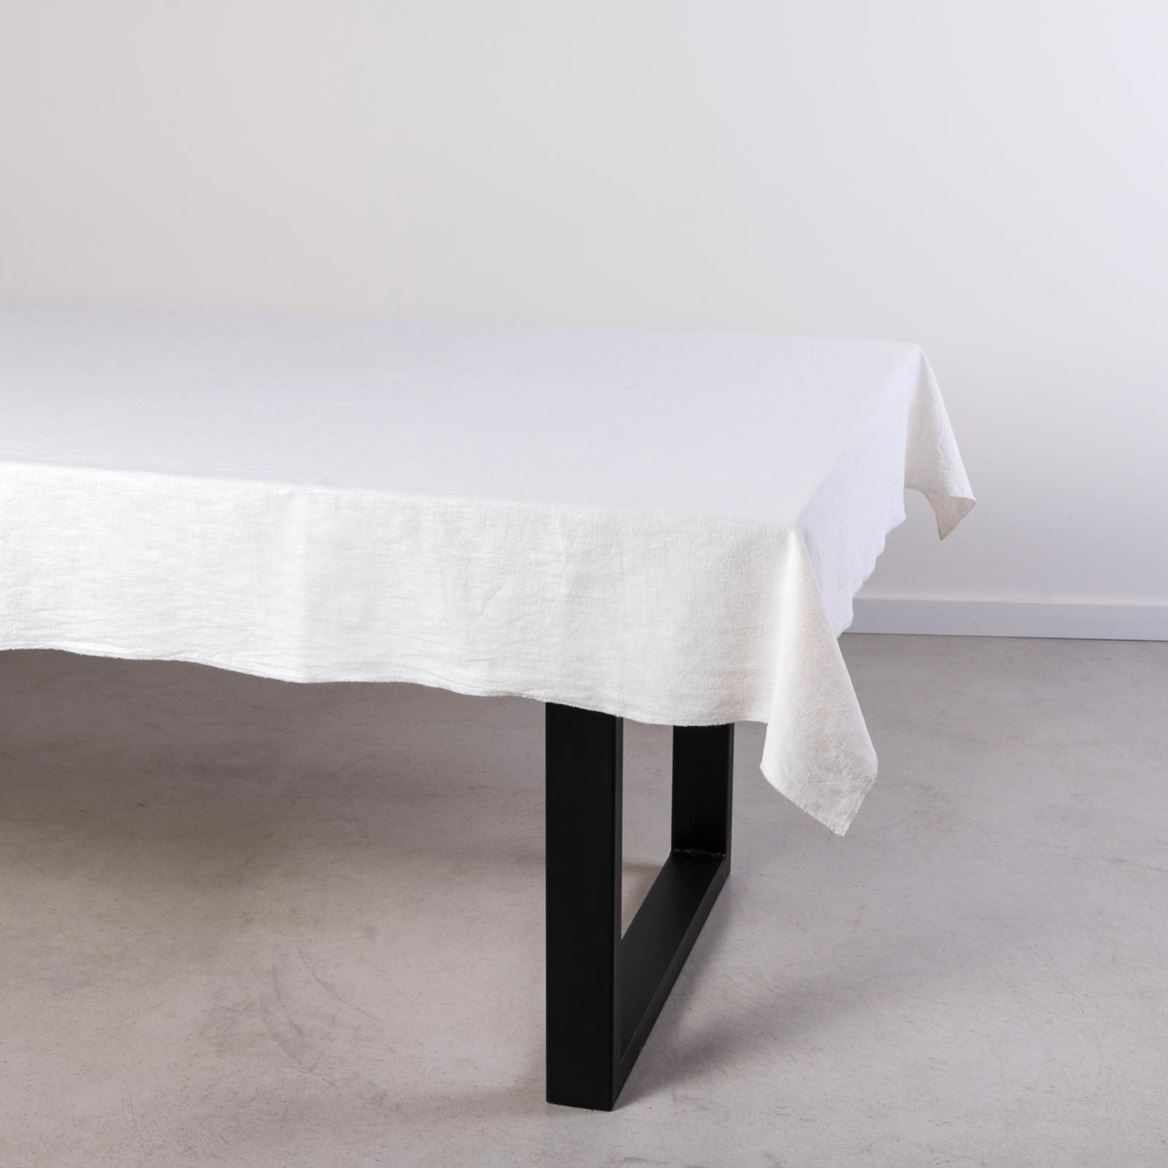 LUXALIN Nappe naturel Larg. 135 x Long. 240 cm_luxalin-nappe-naturel-larg--135-x-long--240-cm